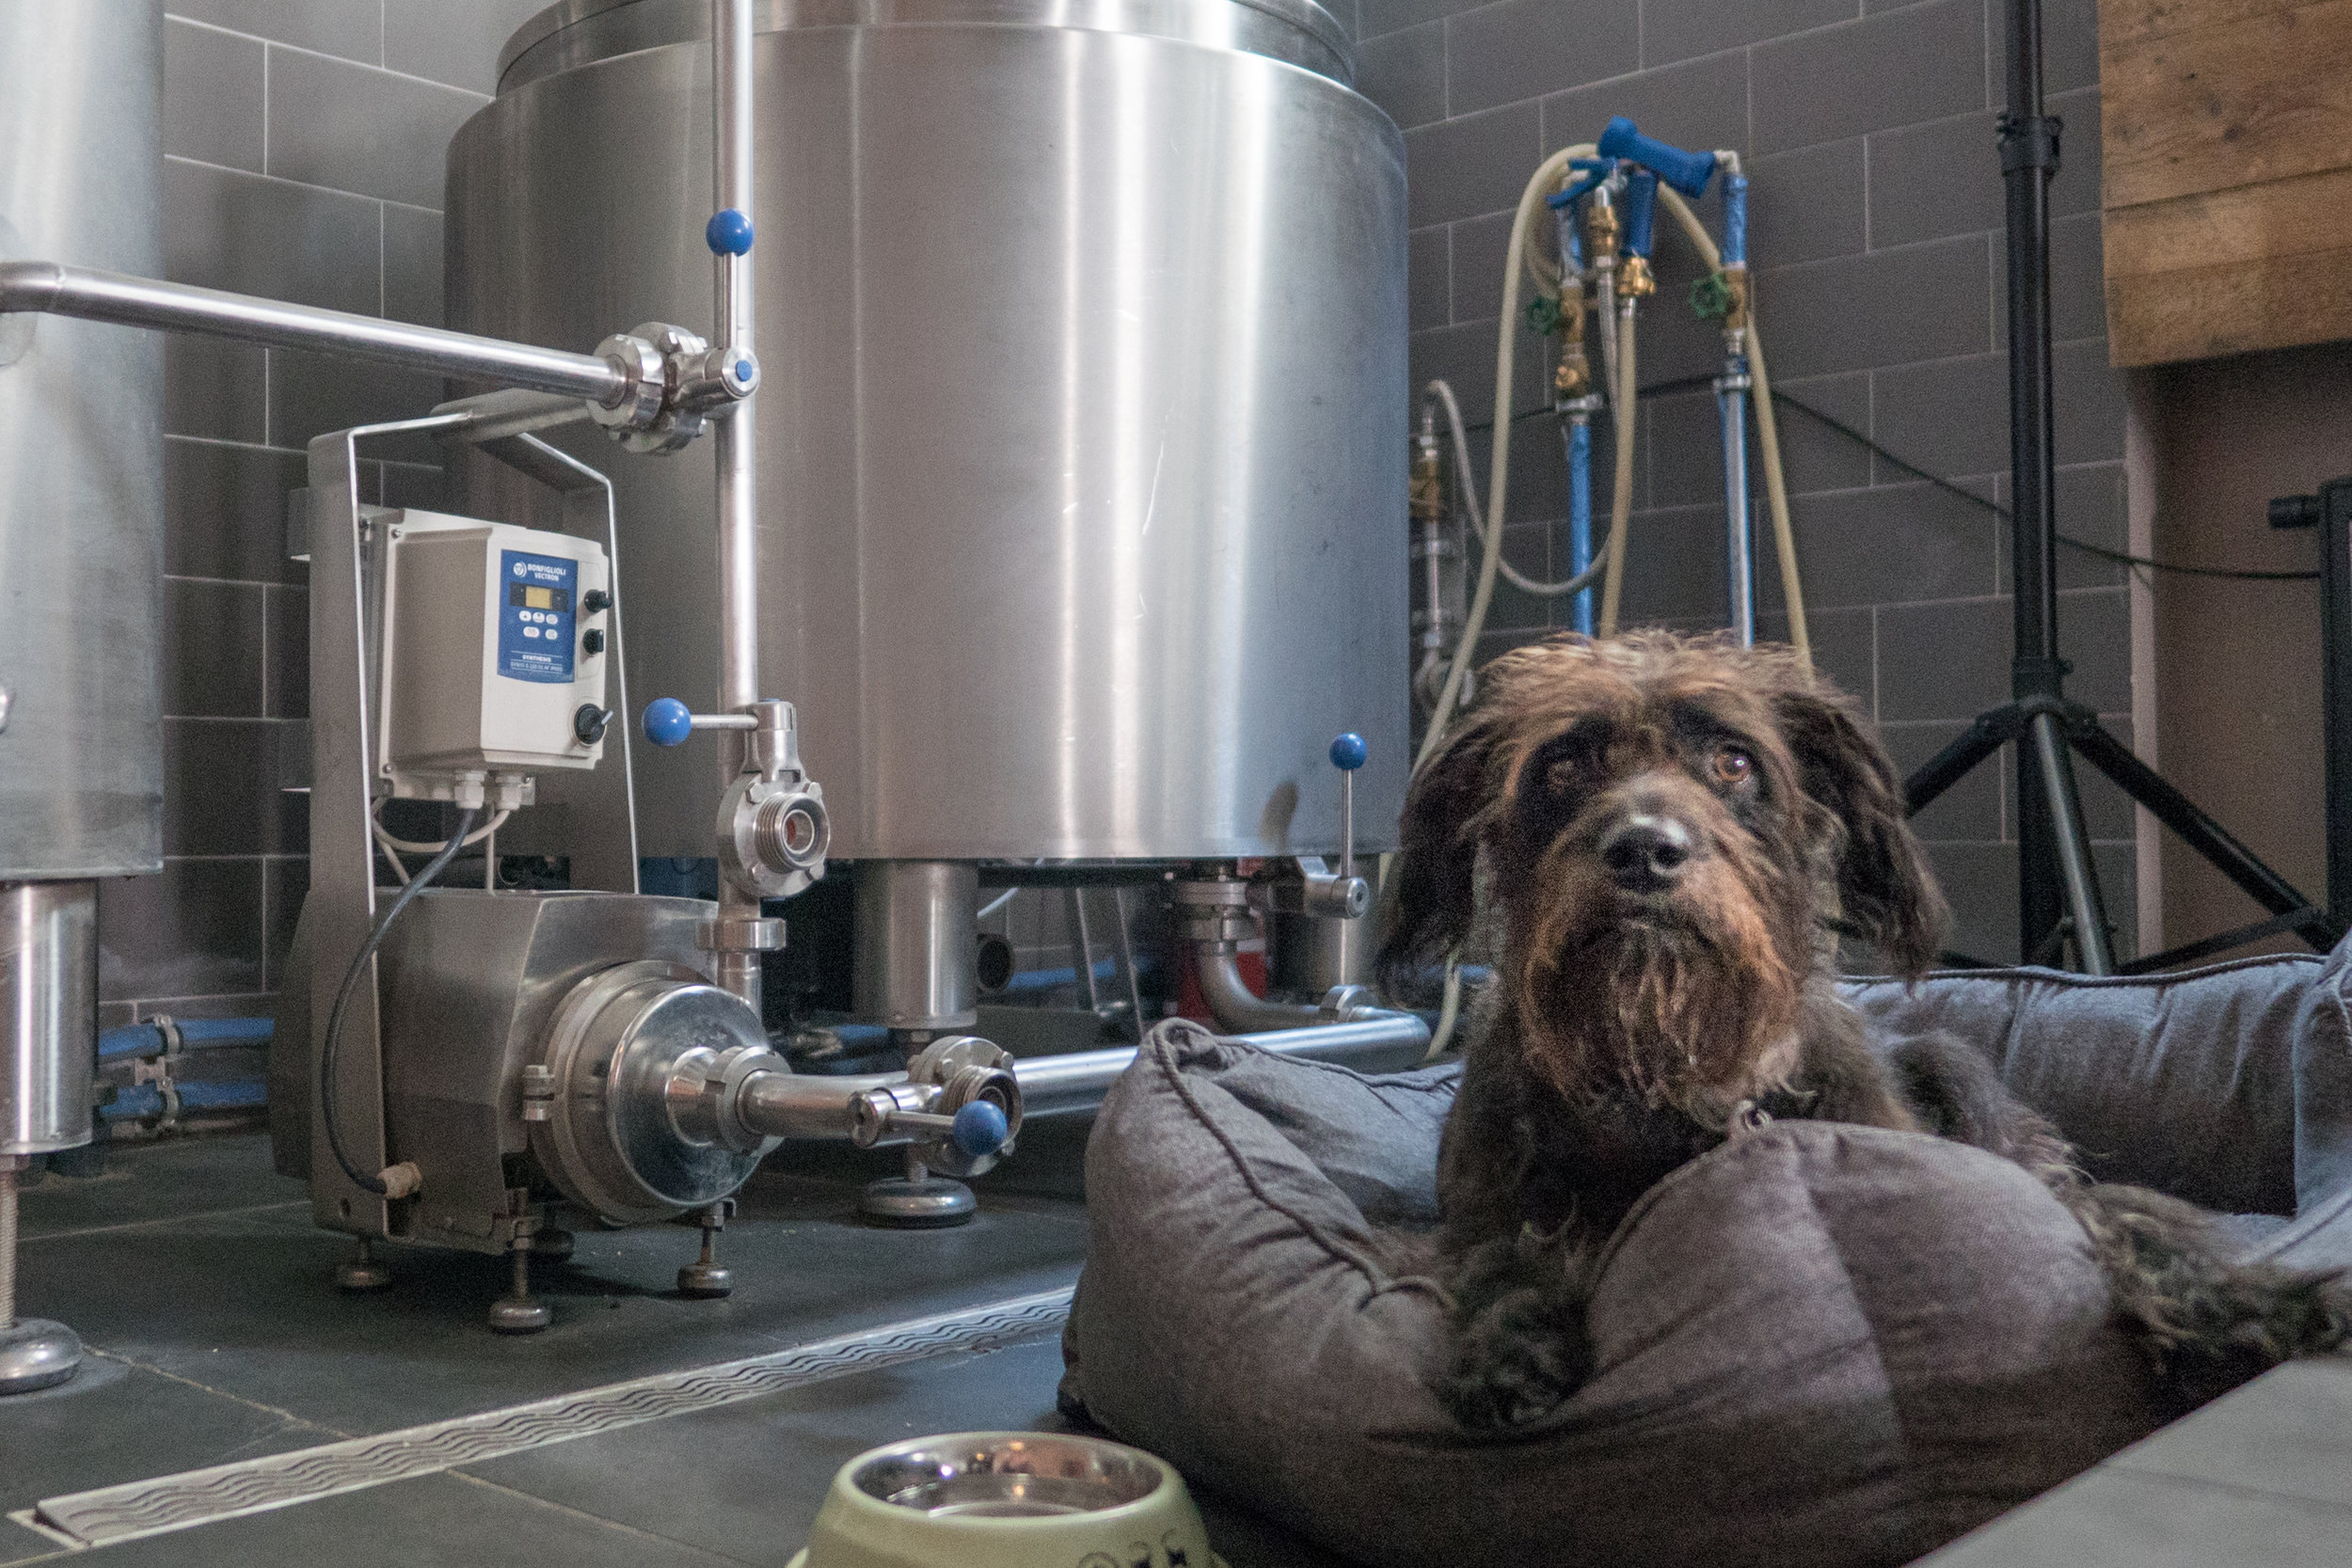 Marty the dog at Beaver Brewing company in Vienna is on guard duty at the brewery